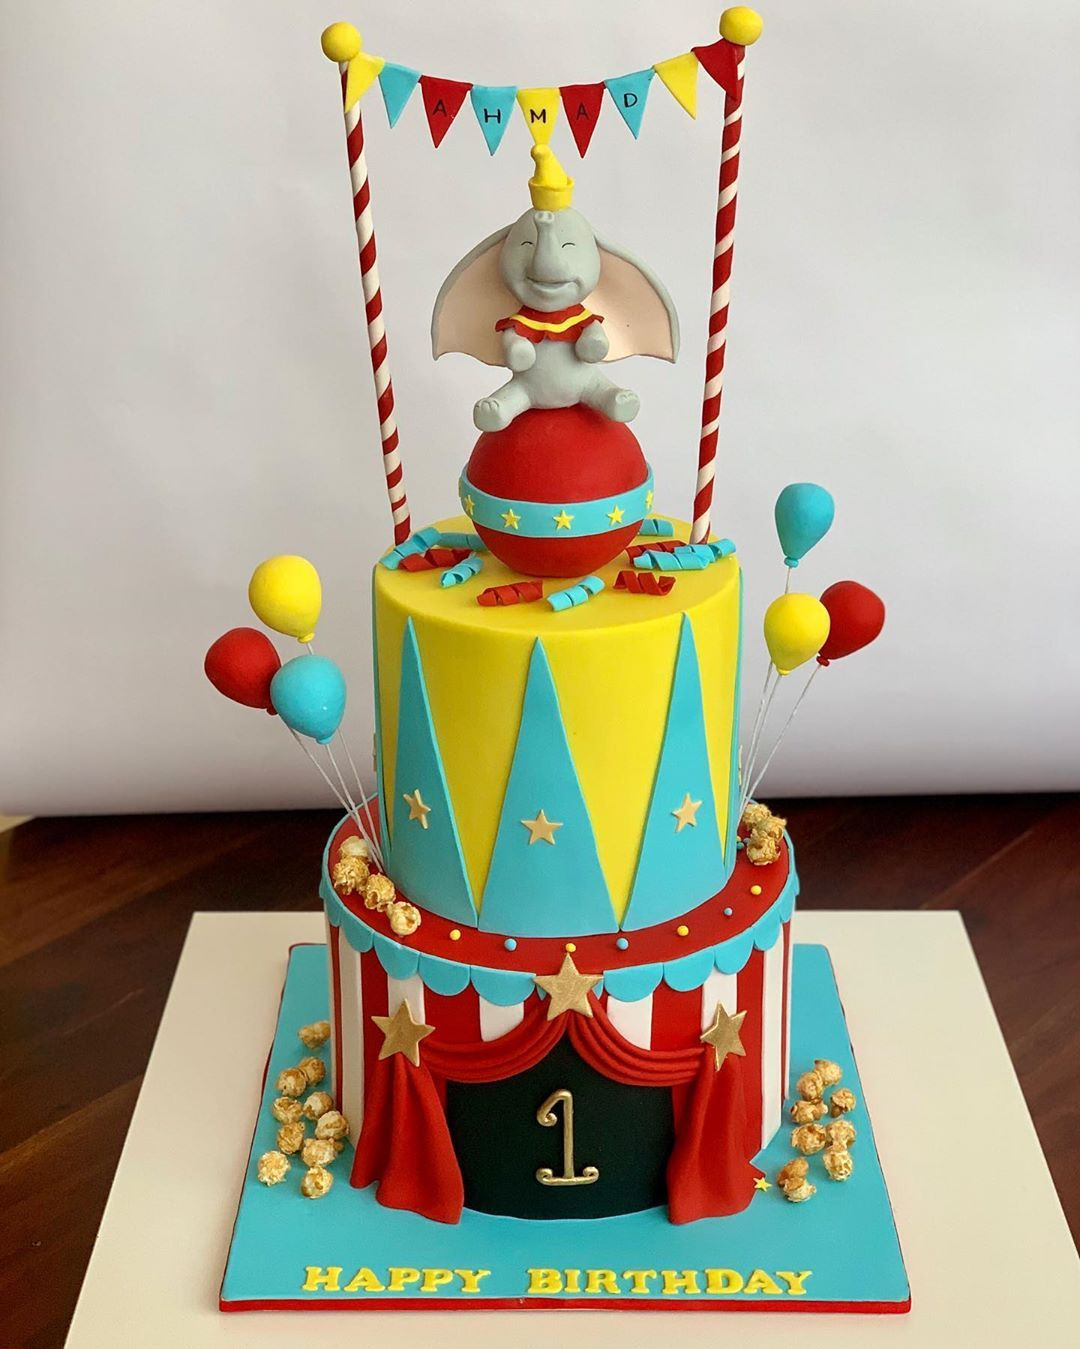 كيك عيد ميلاد دامبو كيكه فيل دامبو الامارات Dumbo Birthday Cake In Abu Dhabi Uae Customized Kids Birthday C Dumbo Cake Girl Baby Shower Decorations Cake